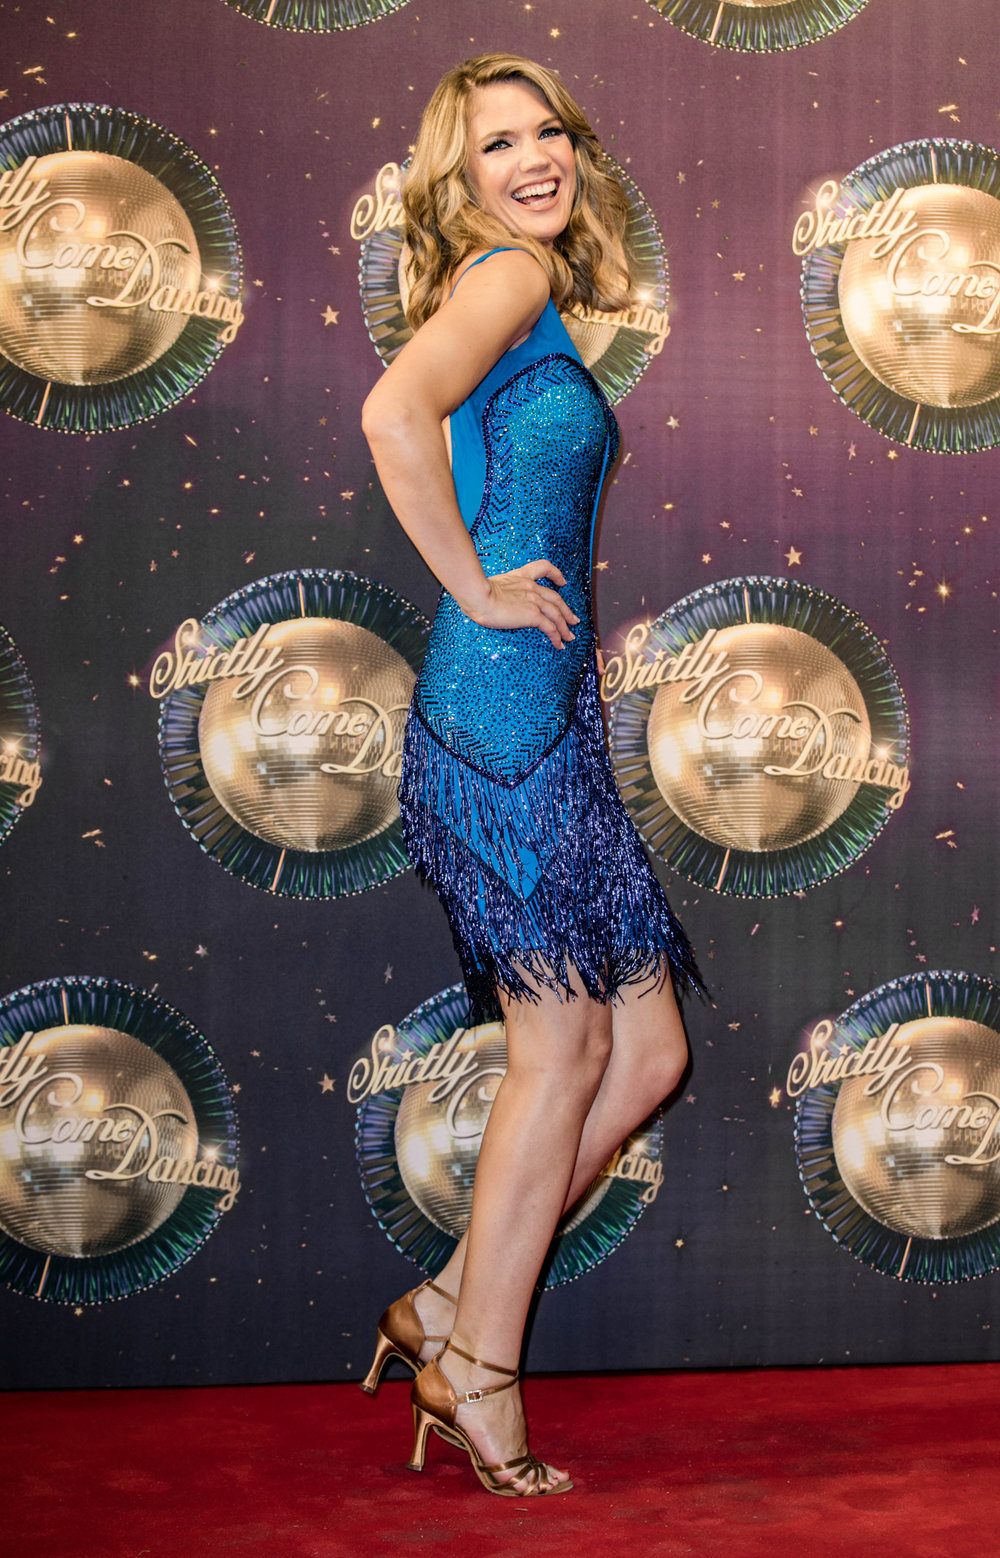 PHT_B5327_strictly_come_dancing_14038.JPG